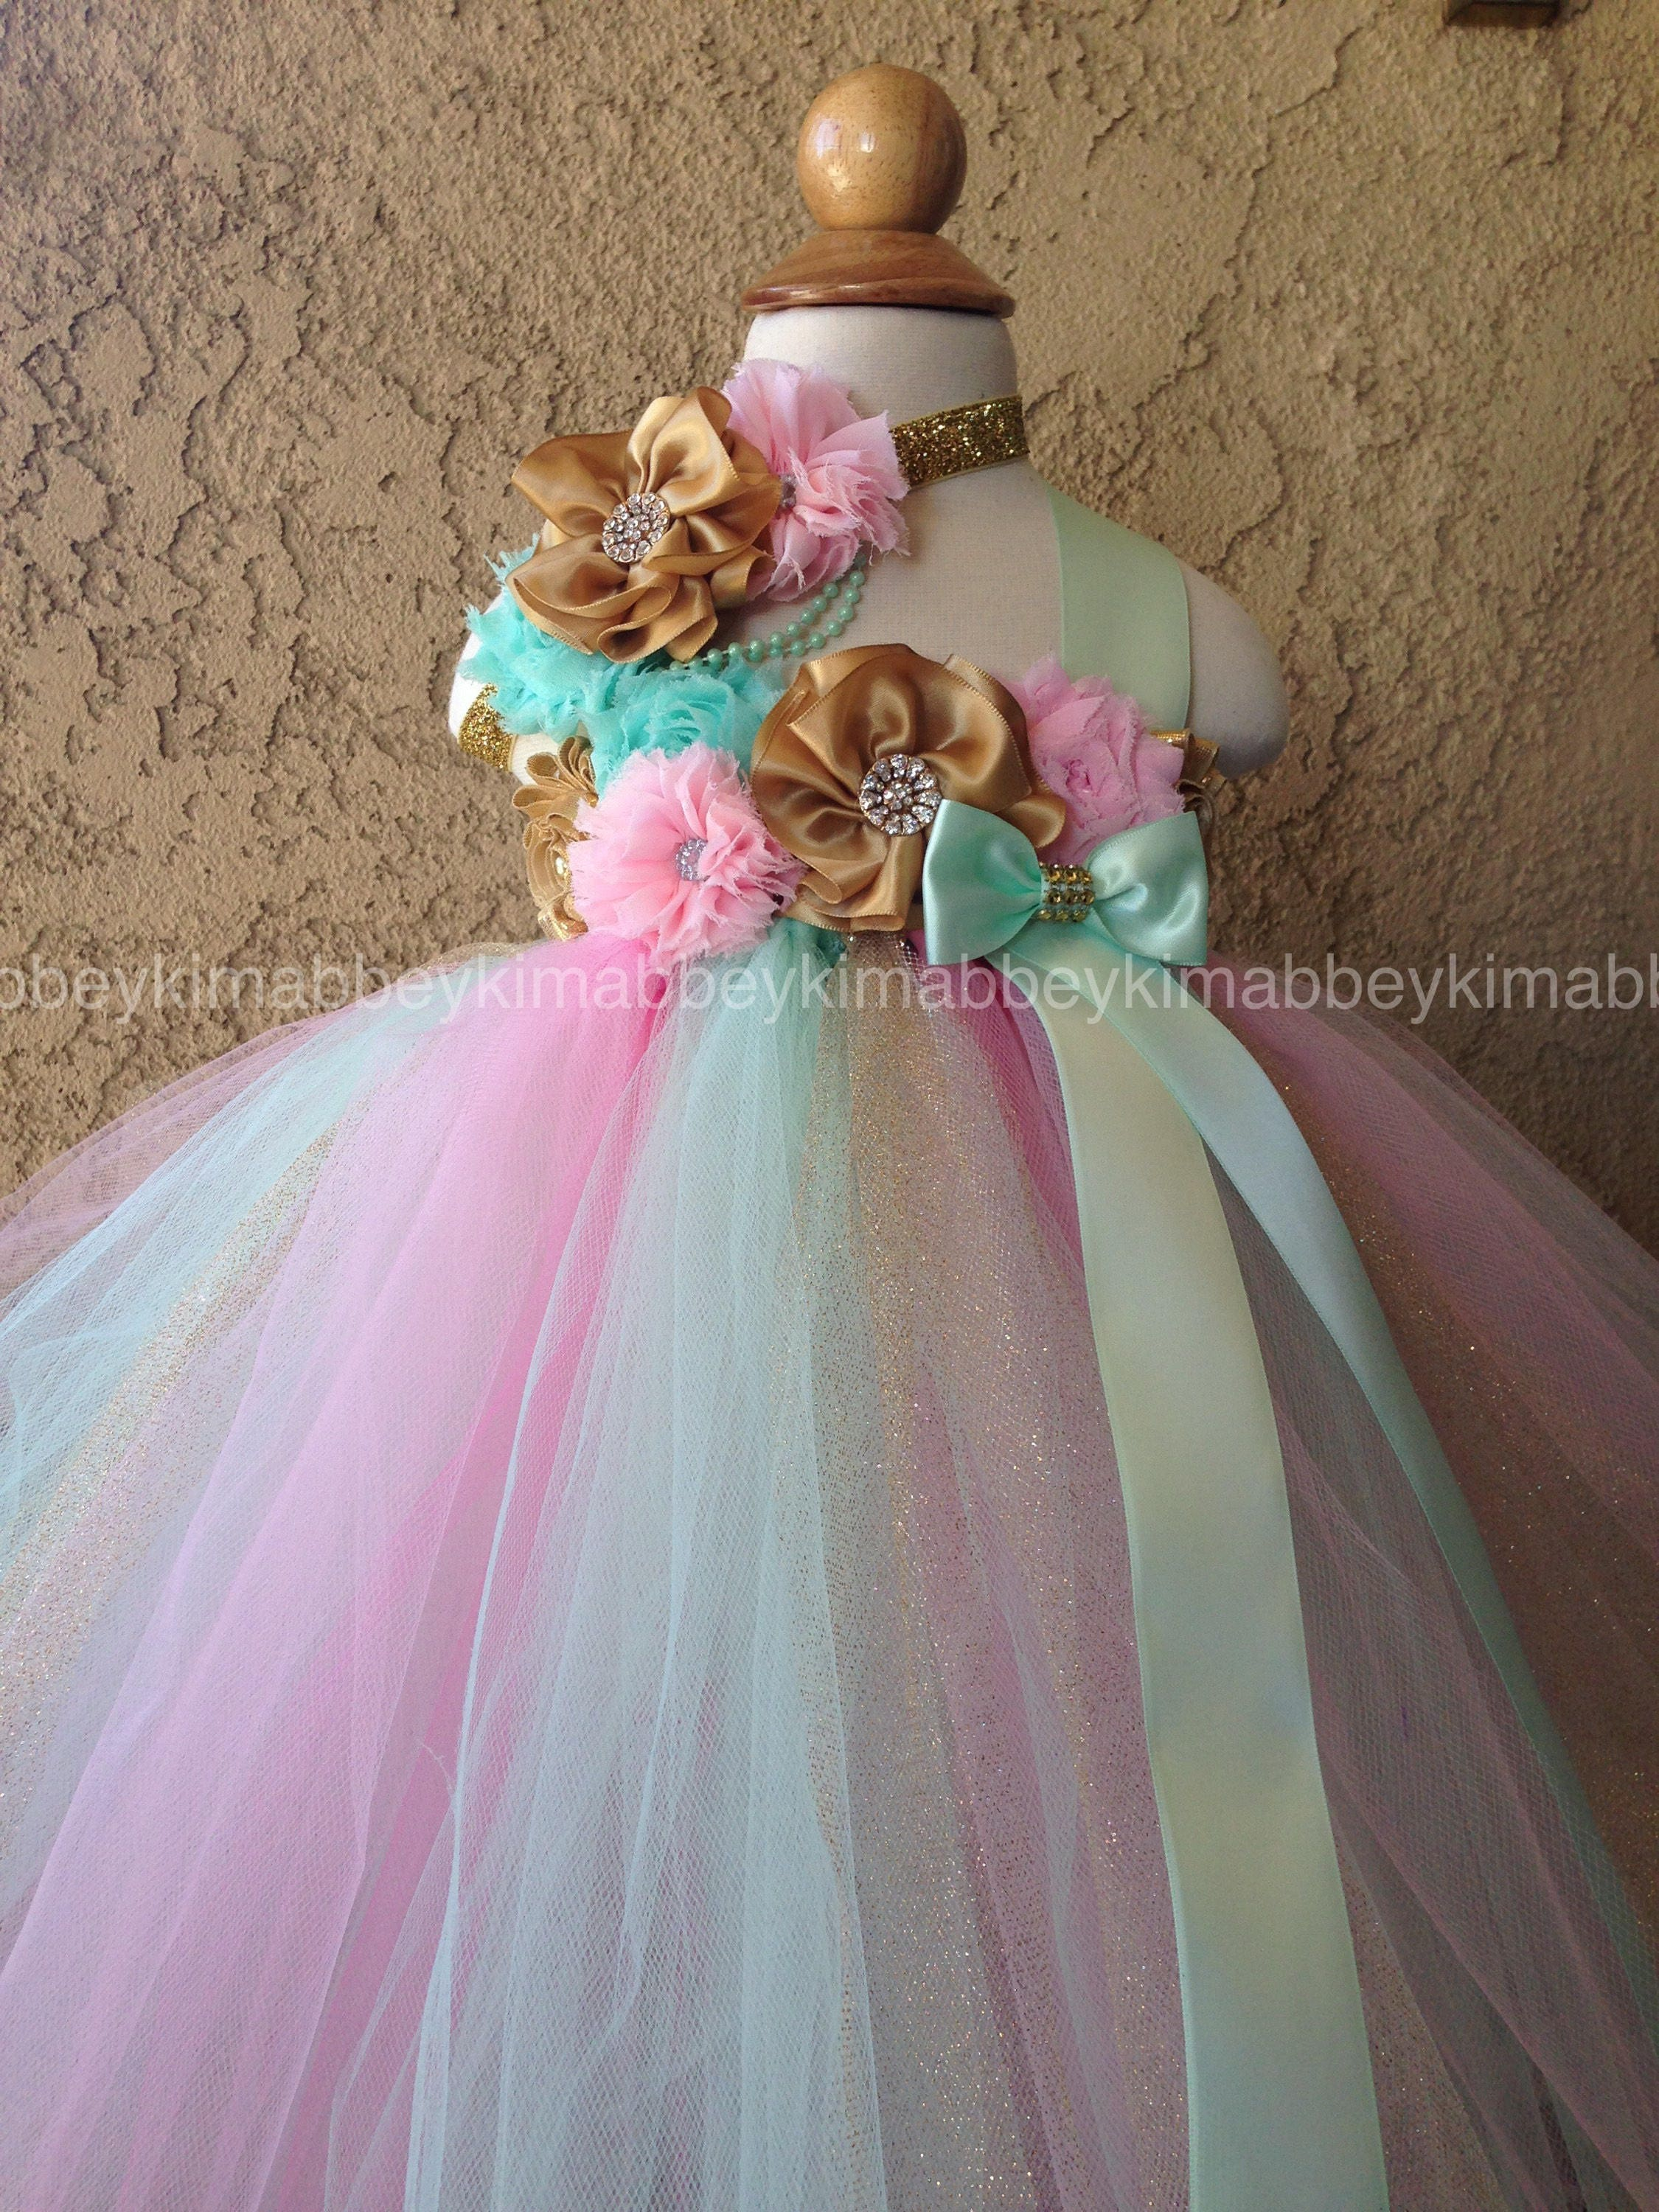 Beautiful baby girl first birthday tutu dress in pink mint